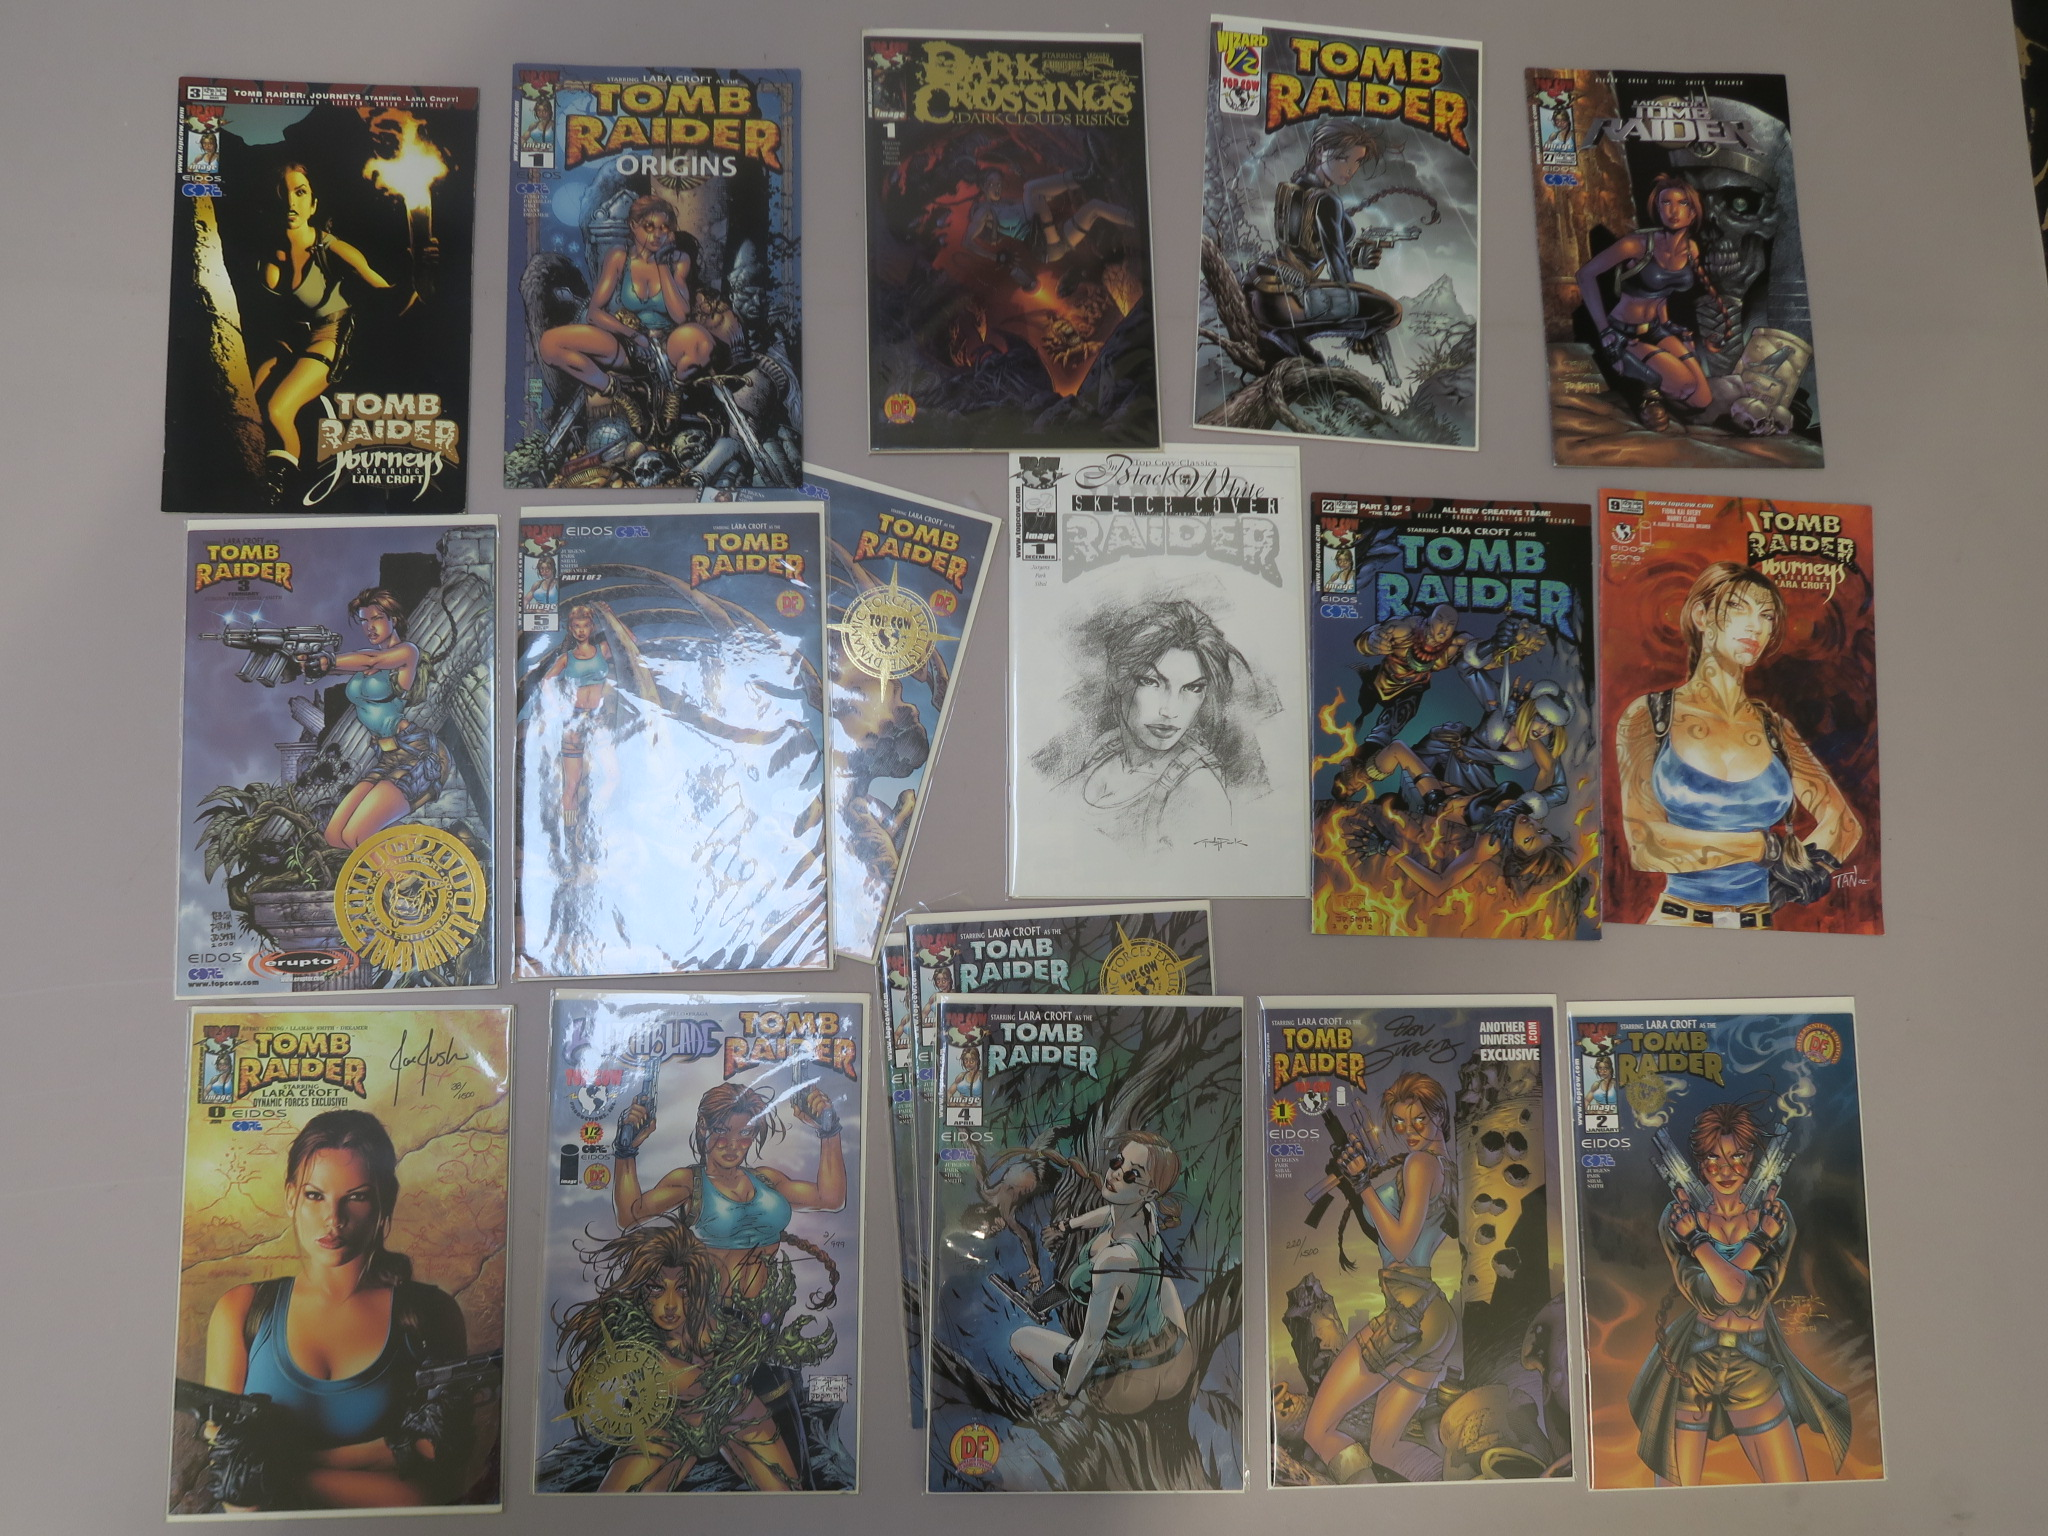 Lot 12 - Tomb Raider signed limited edition comics including #0 (signed Joe Jusko 38/1500), #1/2 (signed Andy